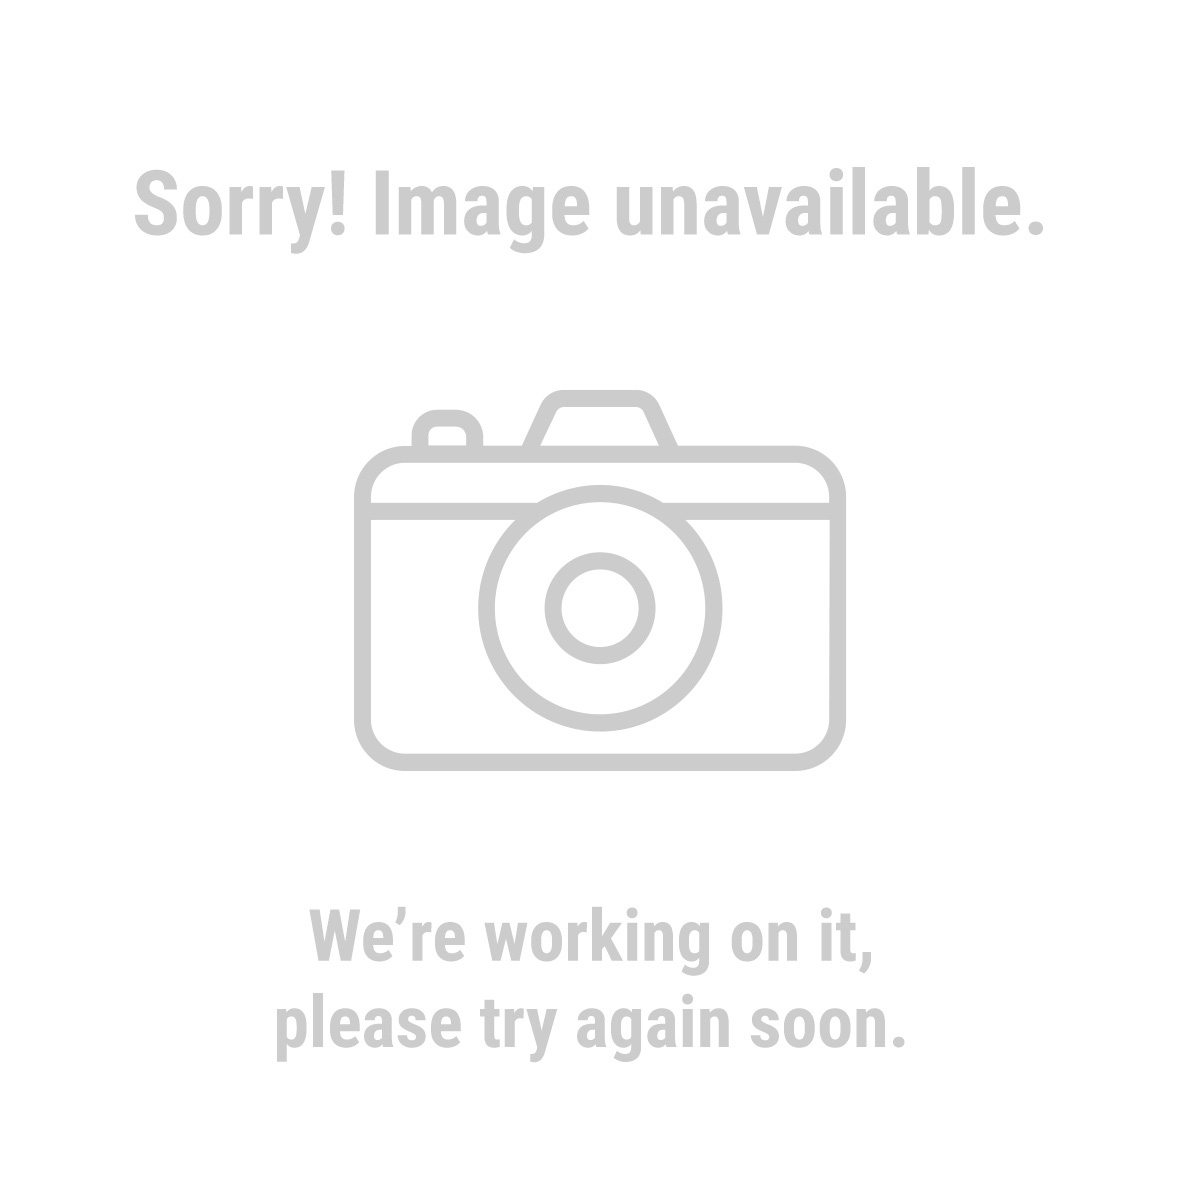 Daytona™ 63183 3 Ton Daytona Professional Steel Jack - Super Duty